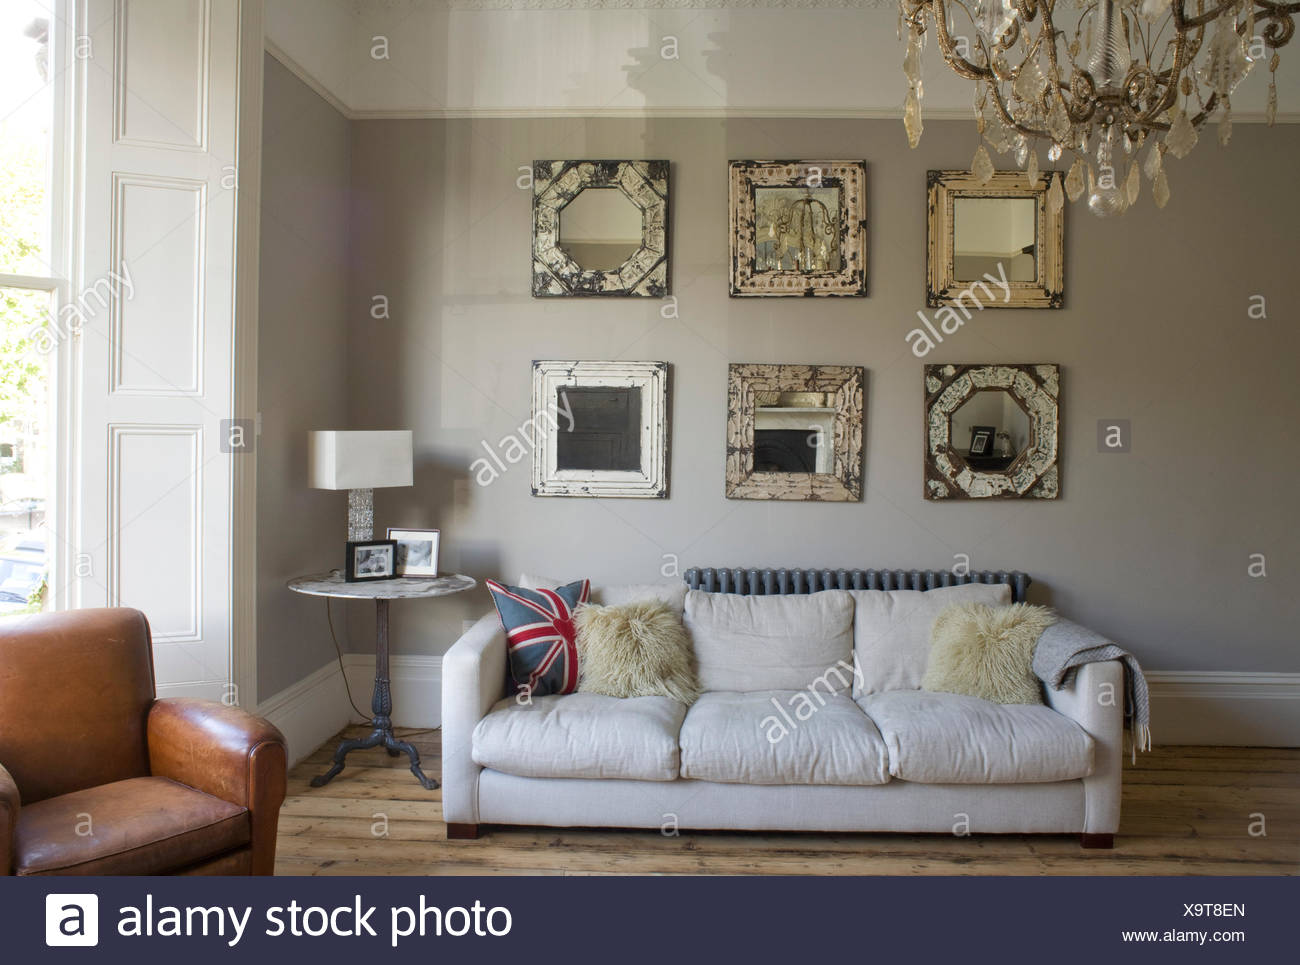 Superb Collection Of Ornate Mirrors Above White Sofa In White Download Free Architecture Designs Scobabritishbridgeorg